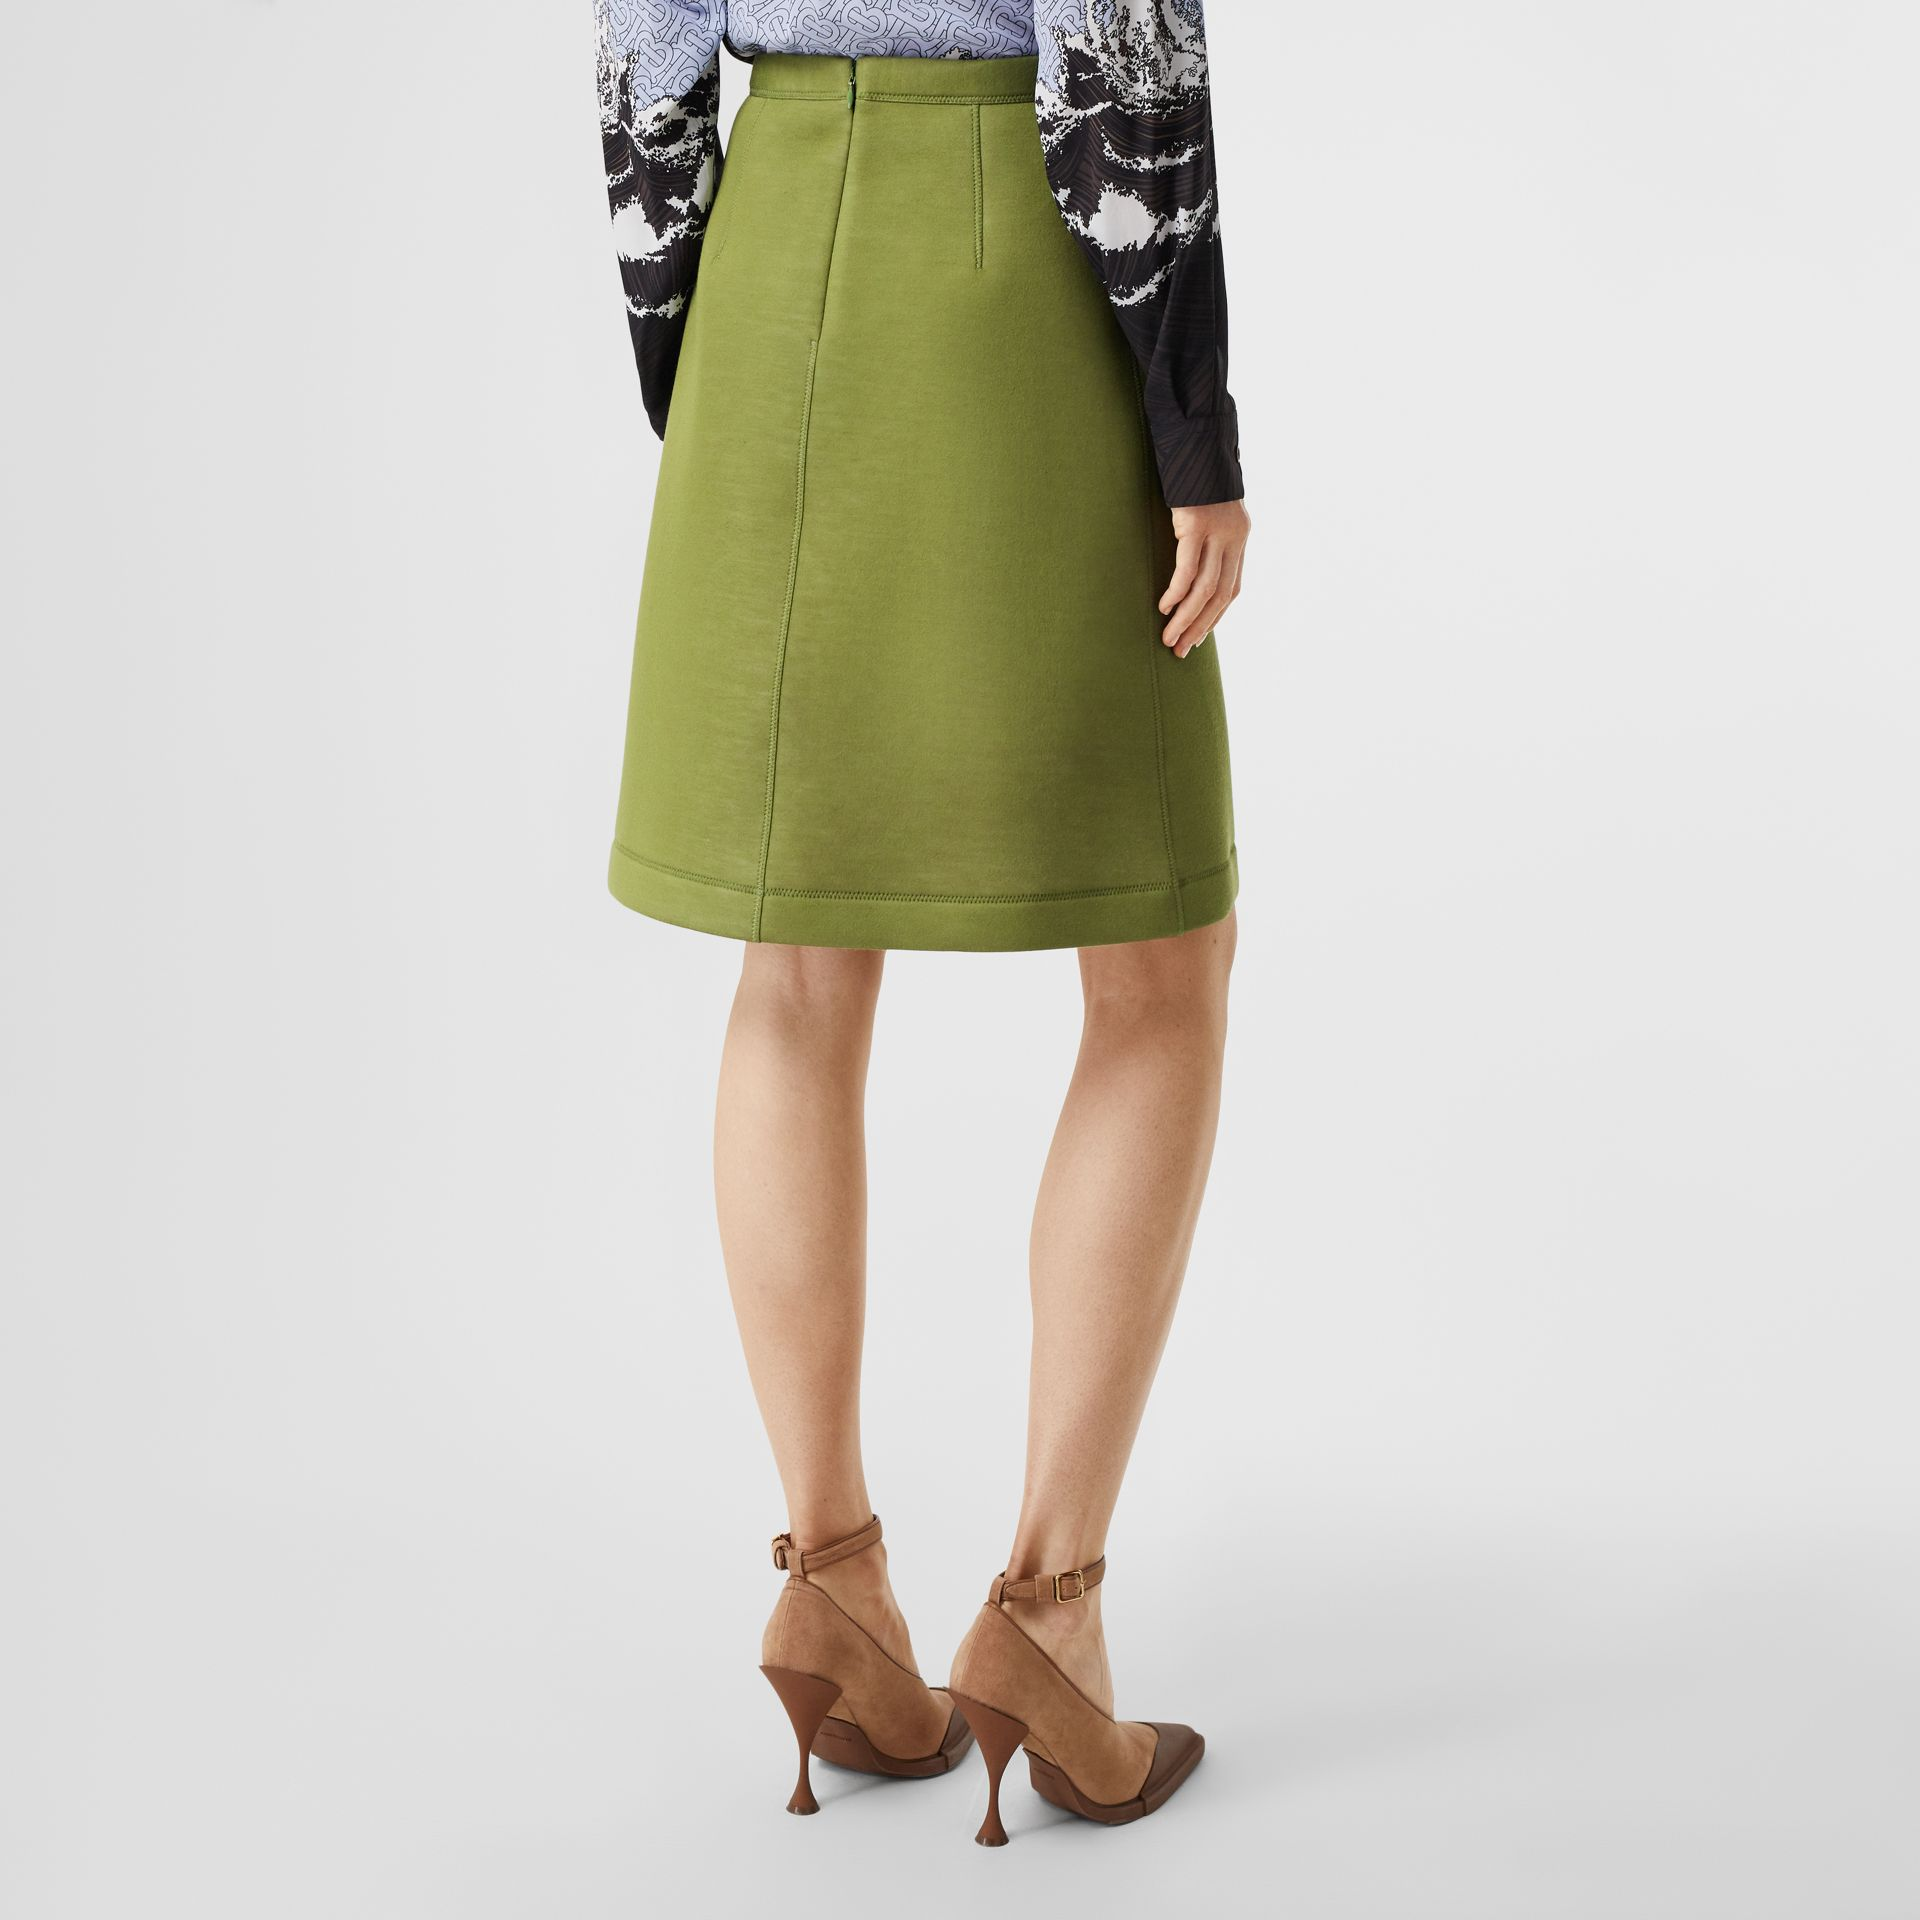 Double-faced Neoprene Skirt in Cedar Green - Women | Burberry United States - gallery image 2